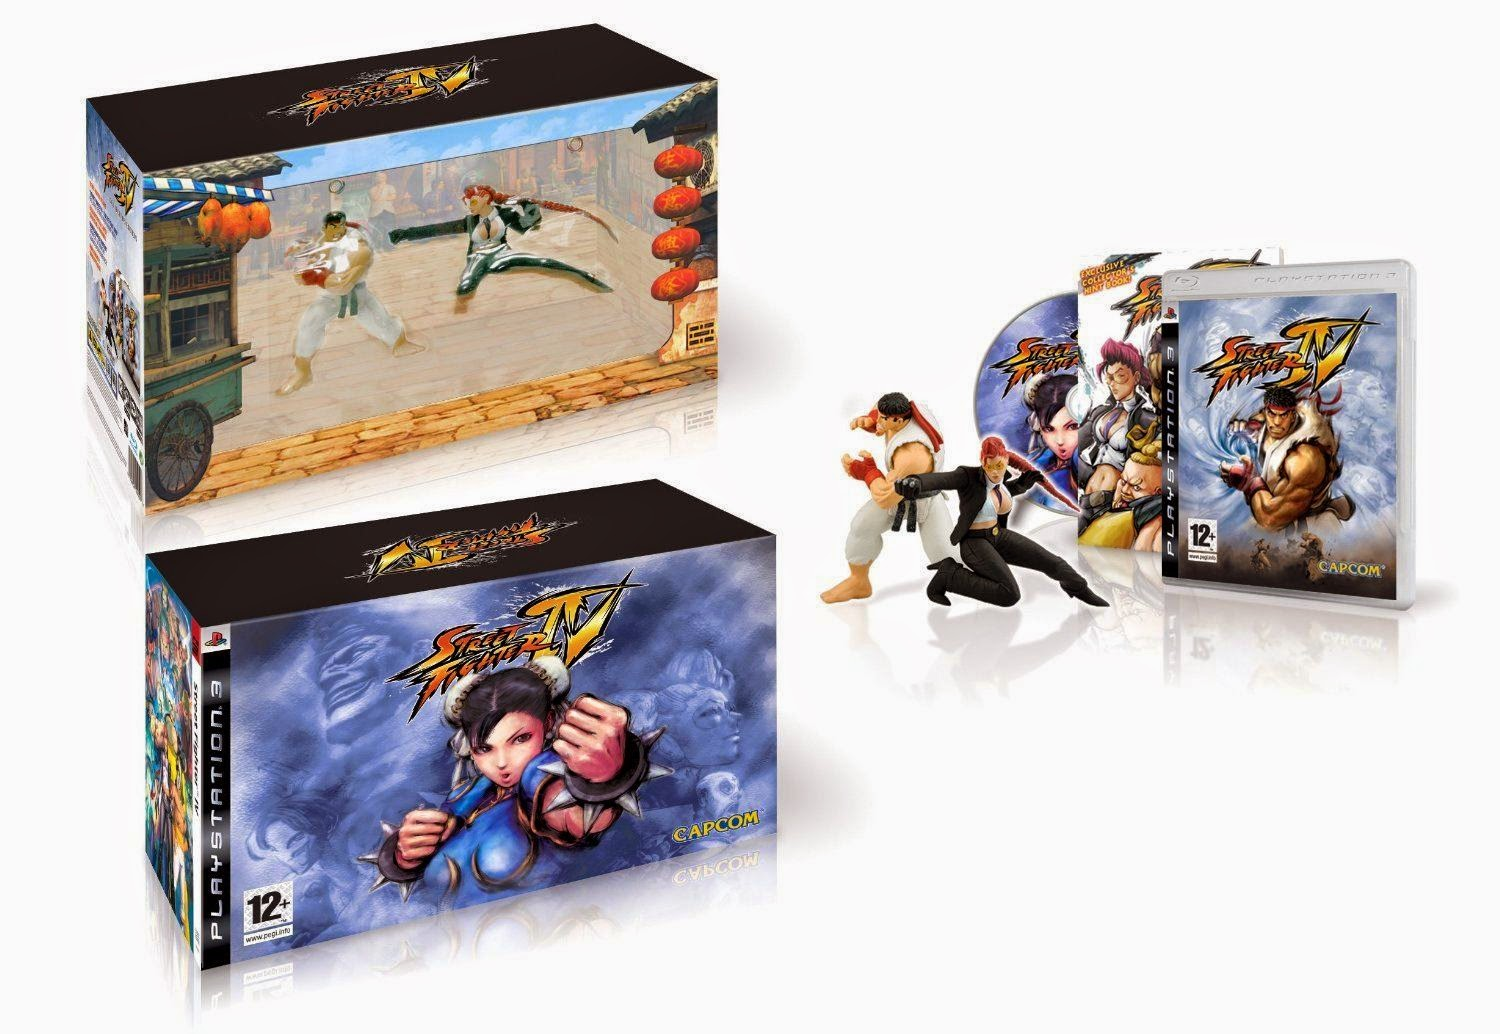 Street Fighter 4 Collector's Edition Playstation 3